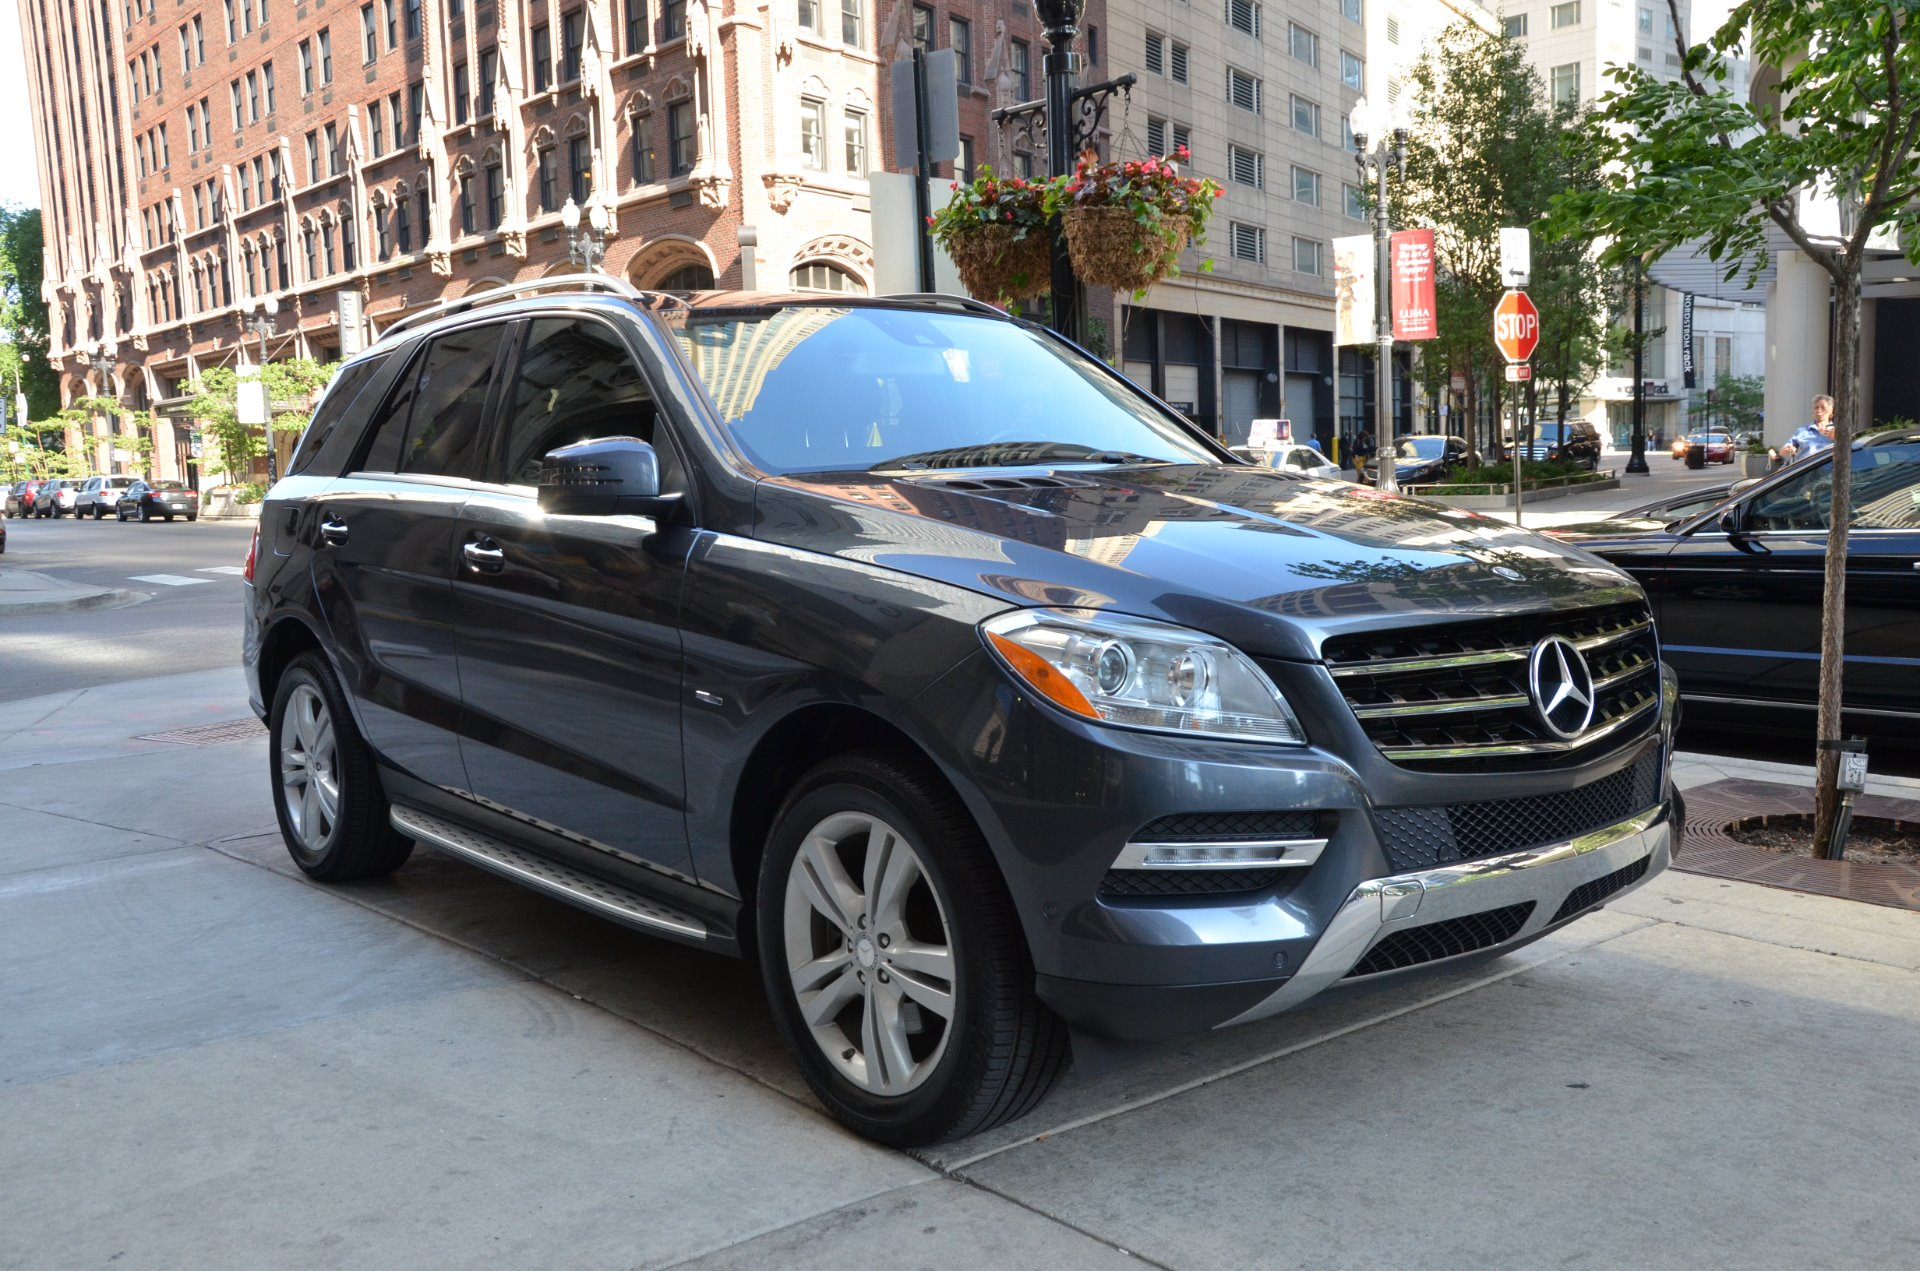 Used 2012 mercedes benz ml350 for sale my marketing journey for Mercedes benz ml 2012 for sale